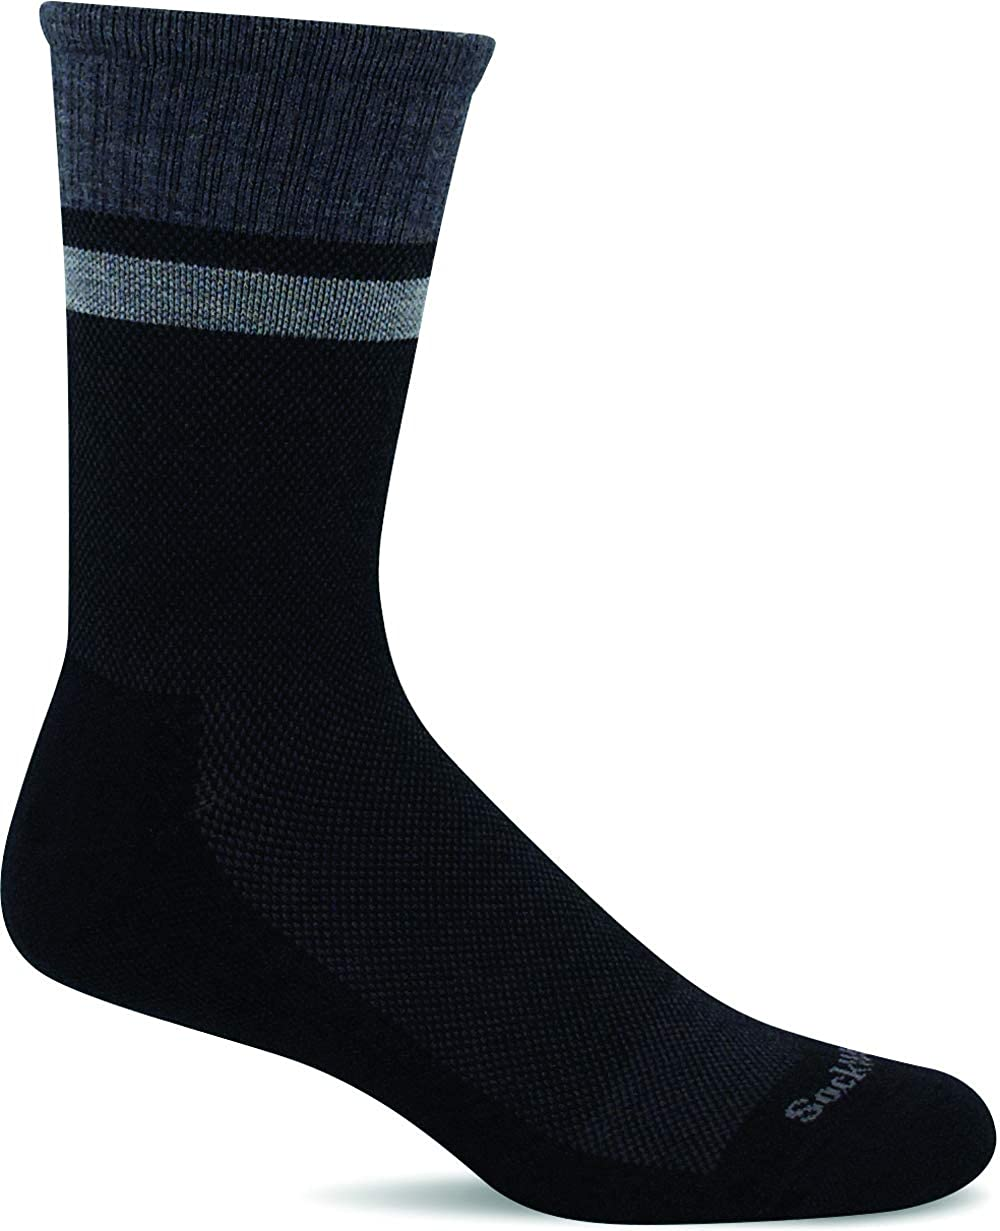 Sockwell Mens Foothold Crew Moderate Graduated Compression Sock